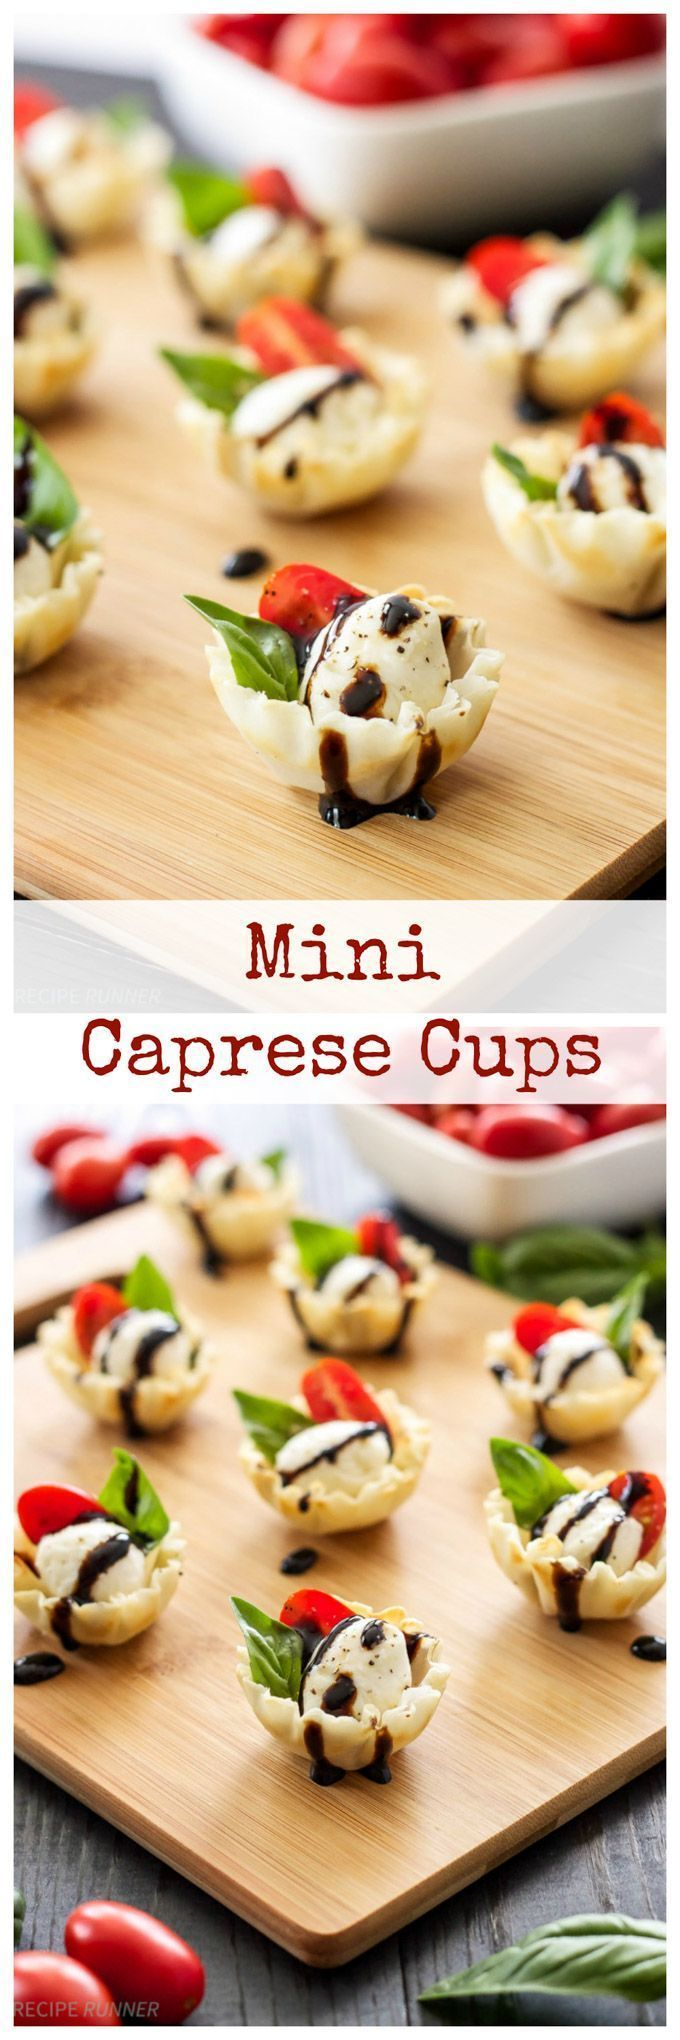 Mini Caprese Cups | Caprese salad stuffed into a mini phyllo cup and drizzled with balsamic glaze! An easy to make one bite appetizer!